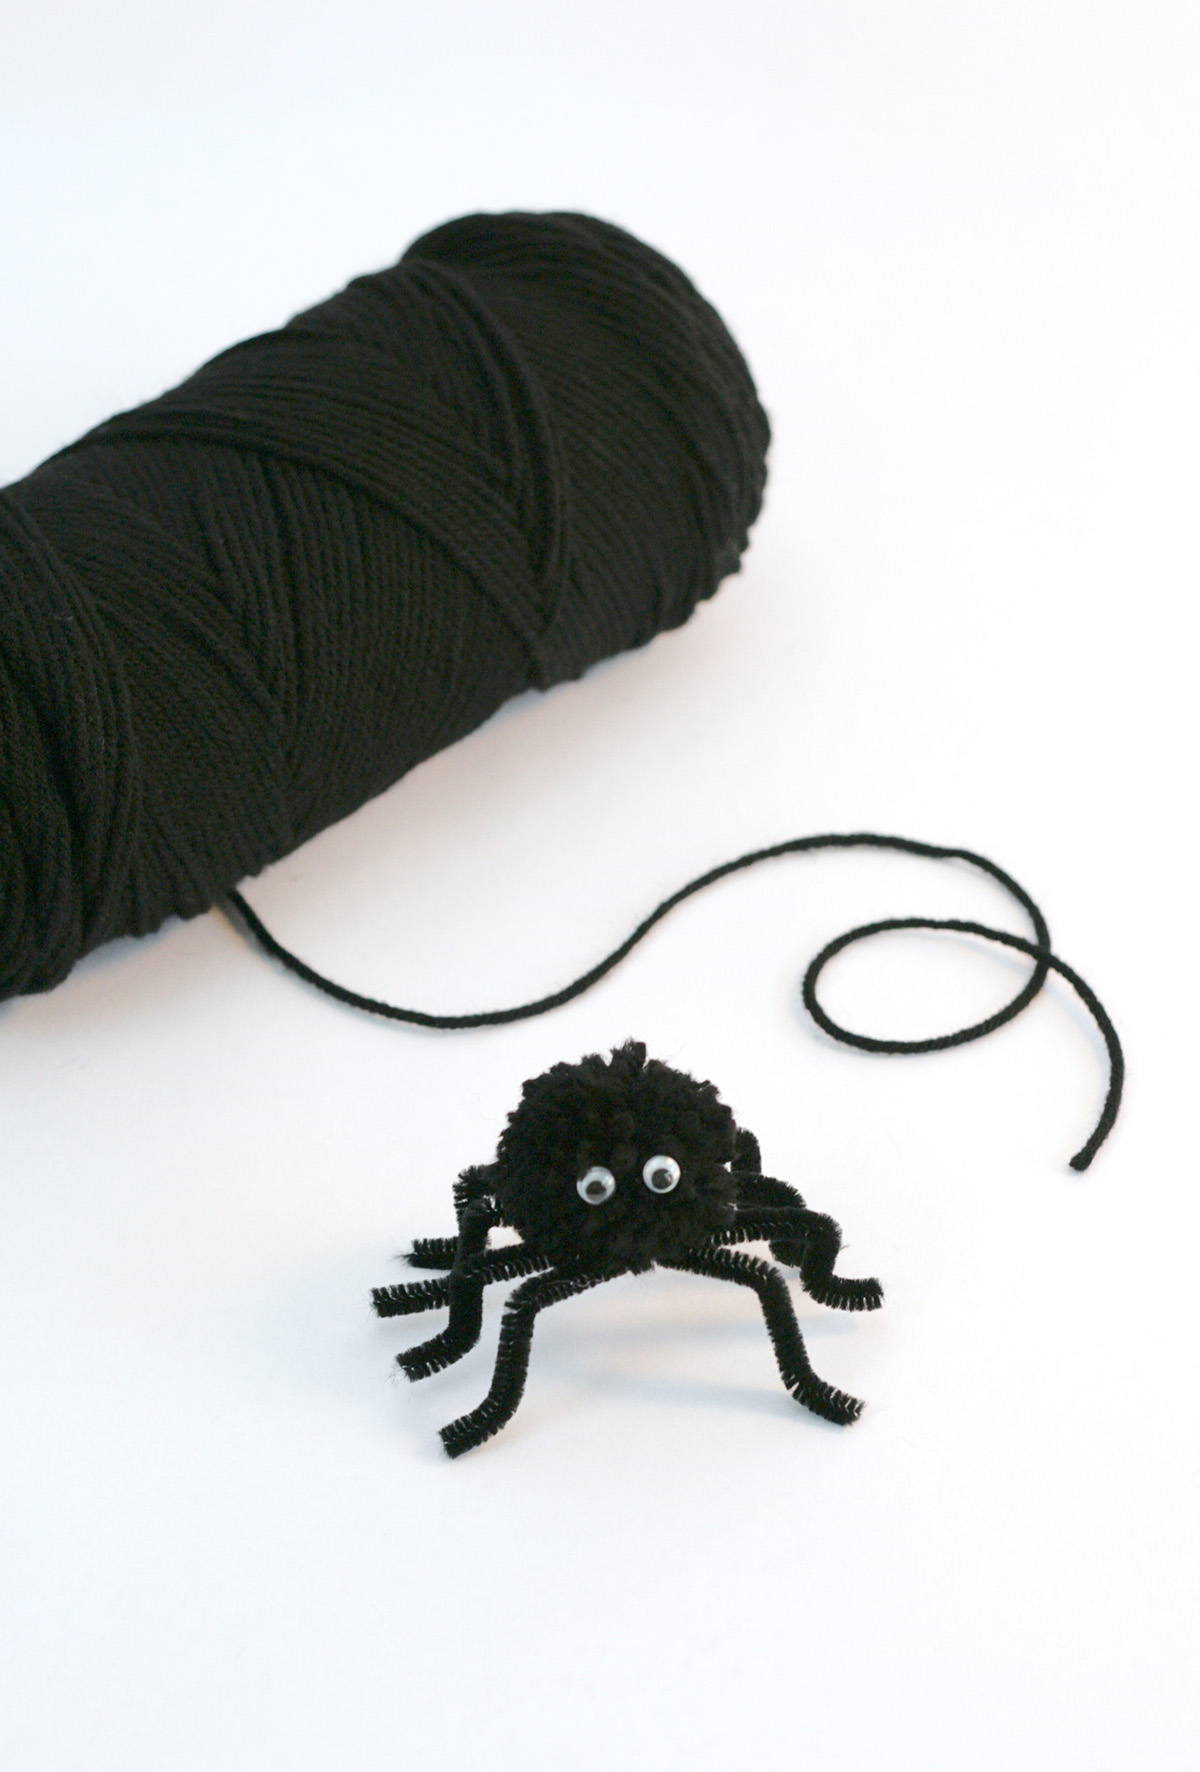 How to make spooky fuzzy spider #Halloween #craft